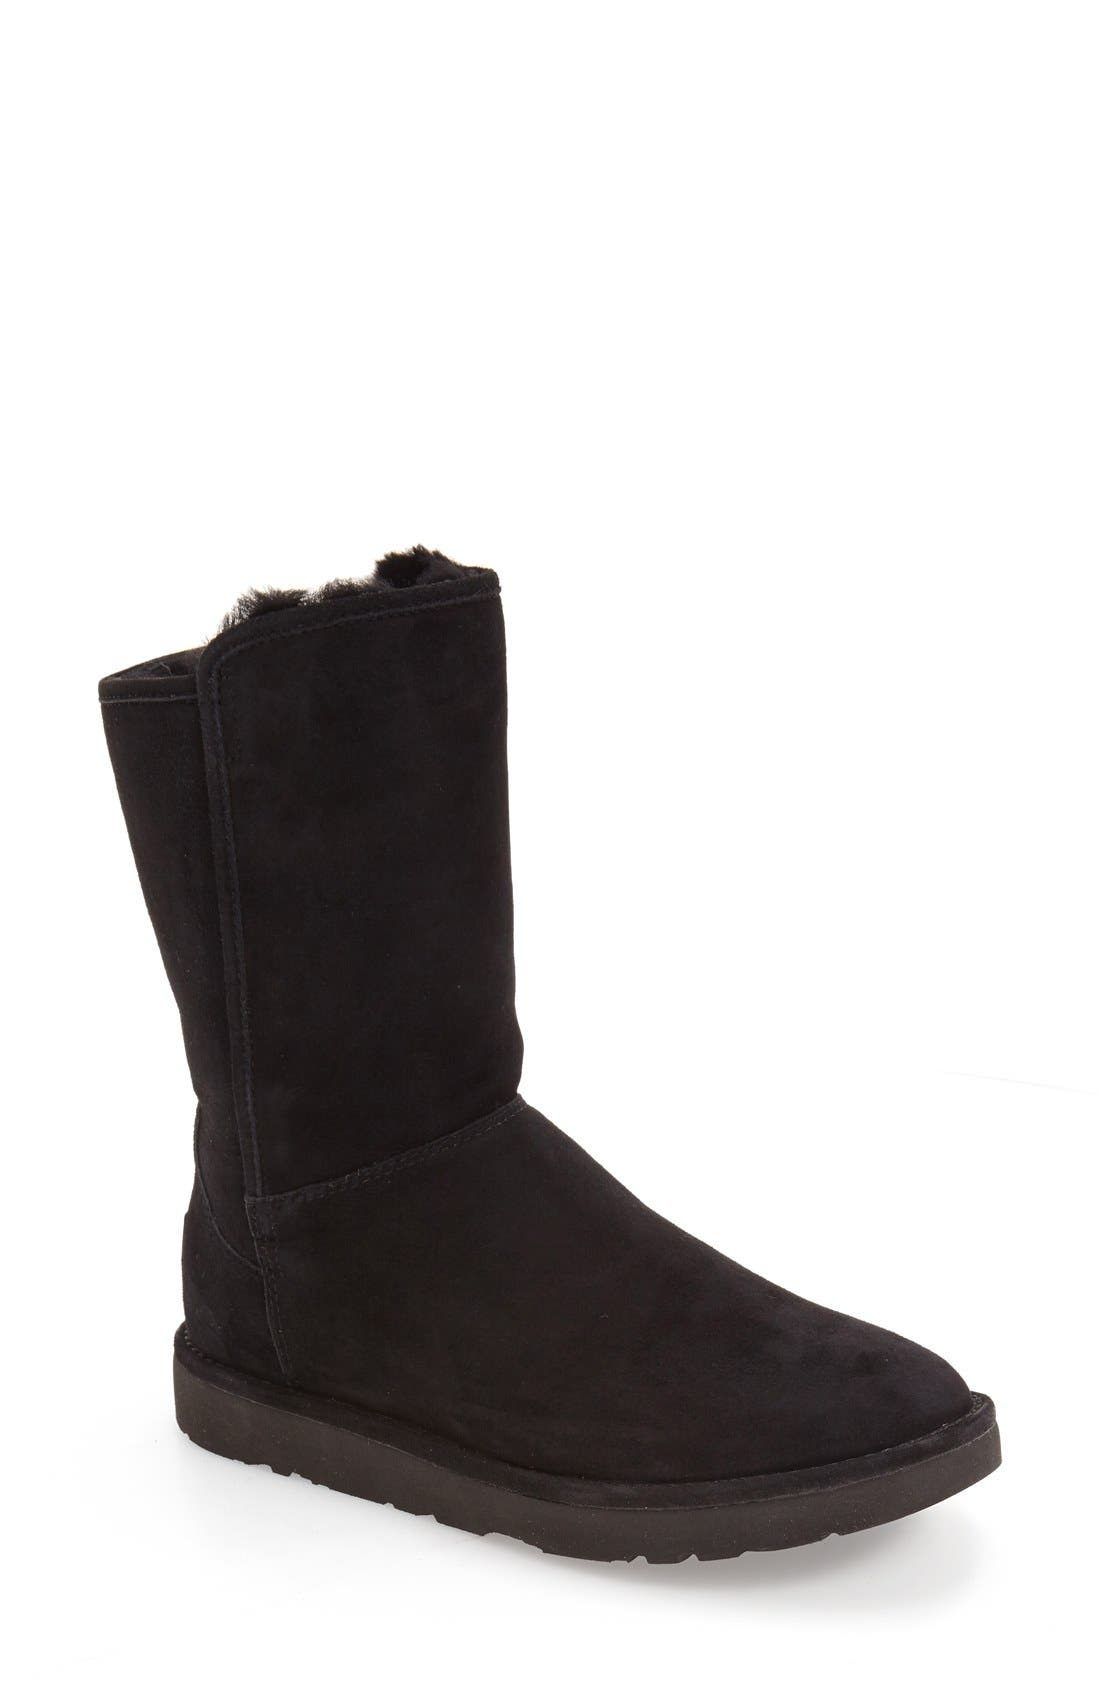 Abree II Short Boot,                             Main thumbnail 1, color,                             NERO SUEDE